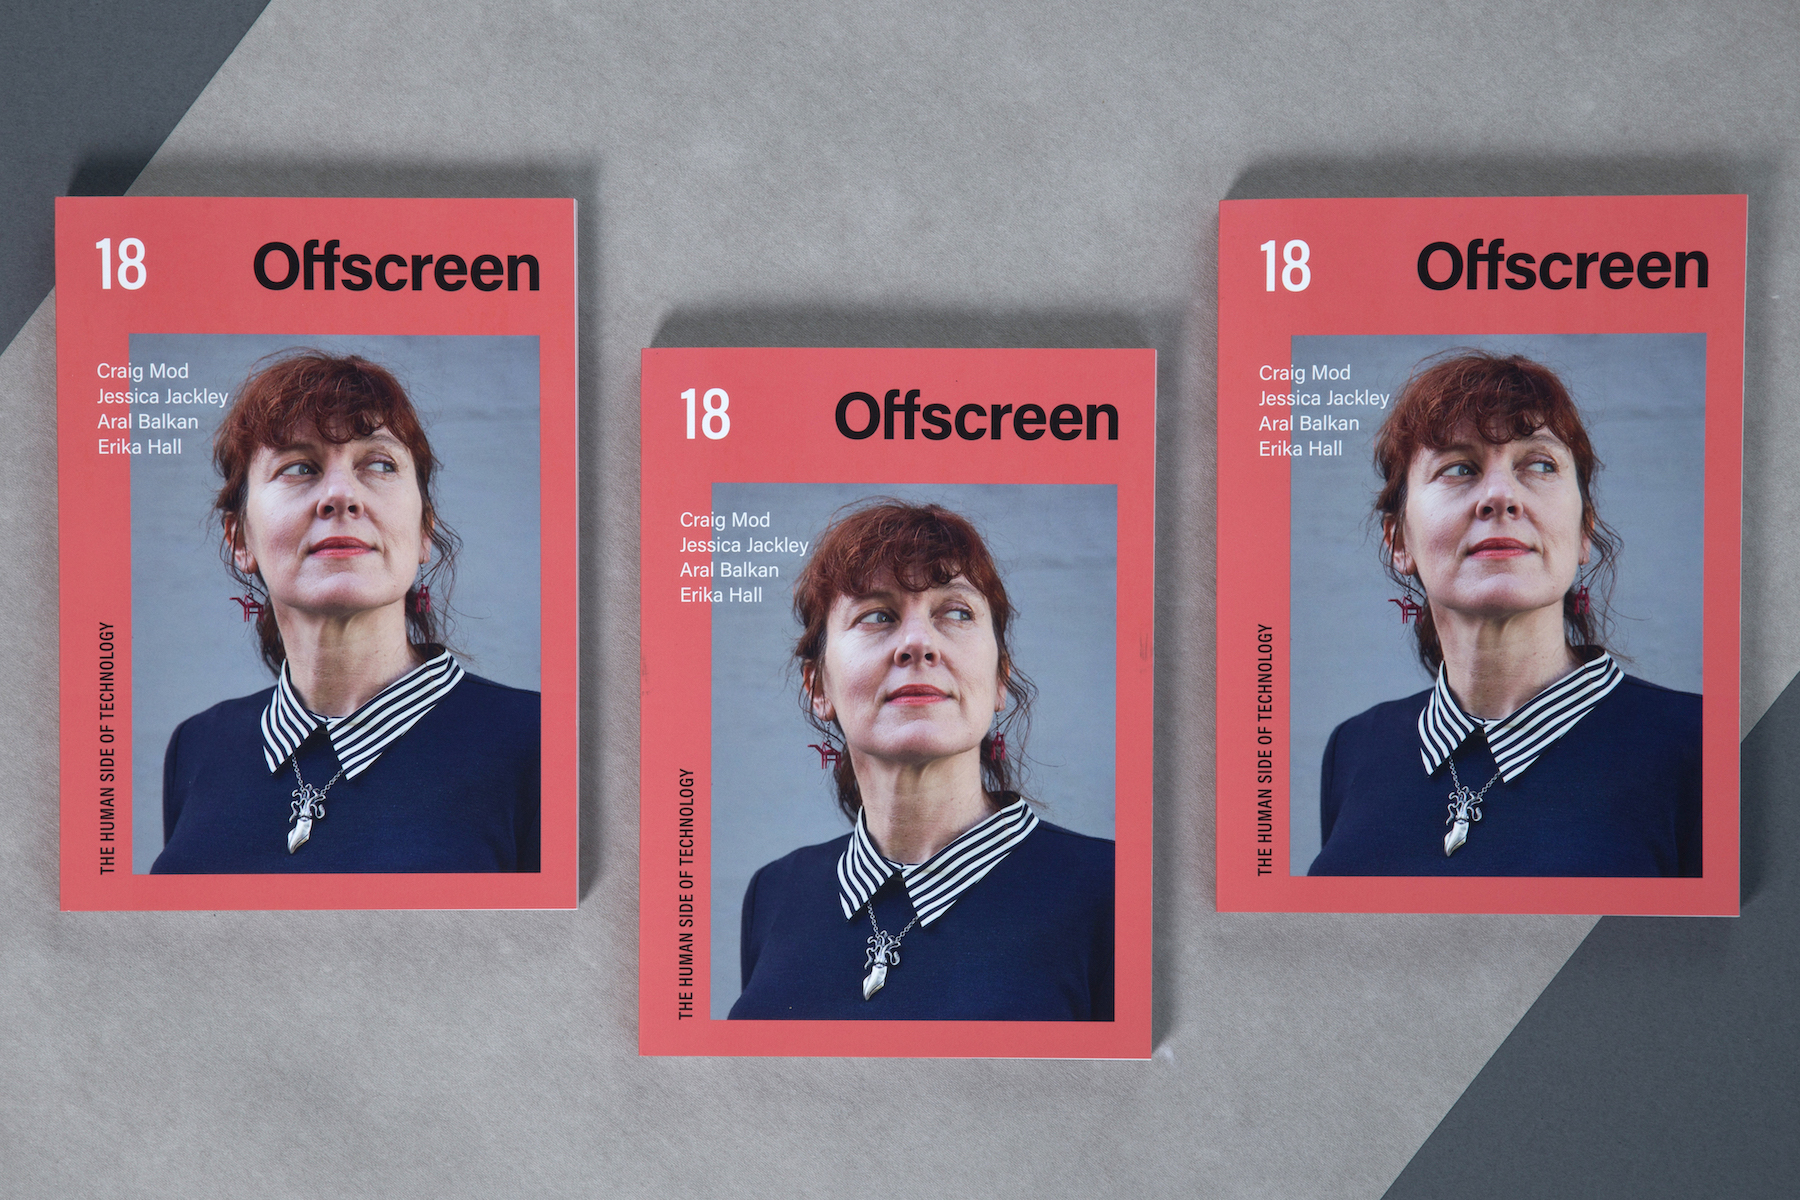 Issue #18 of Offscreen Magazine